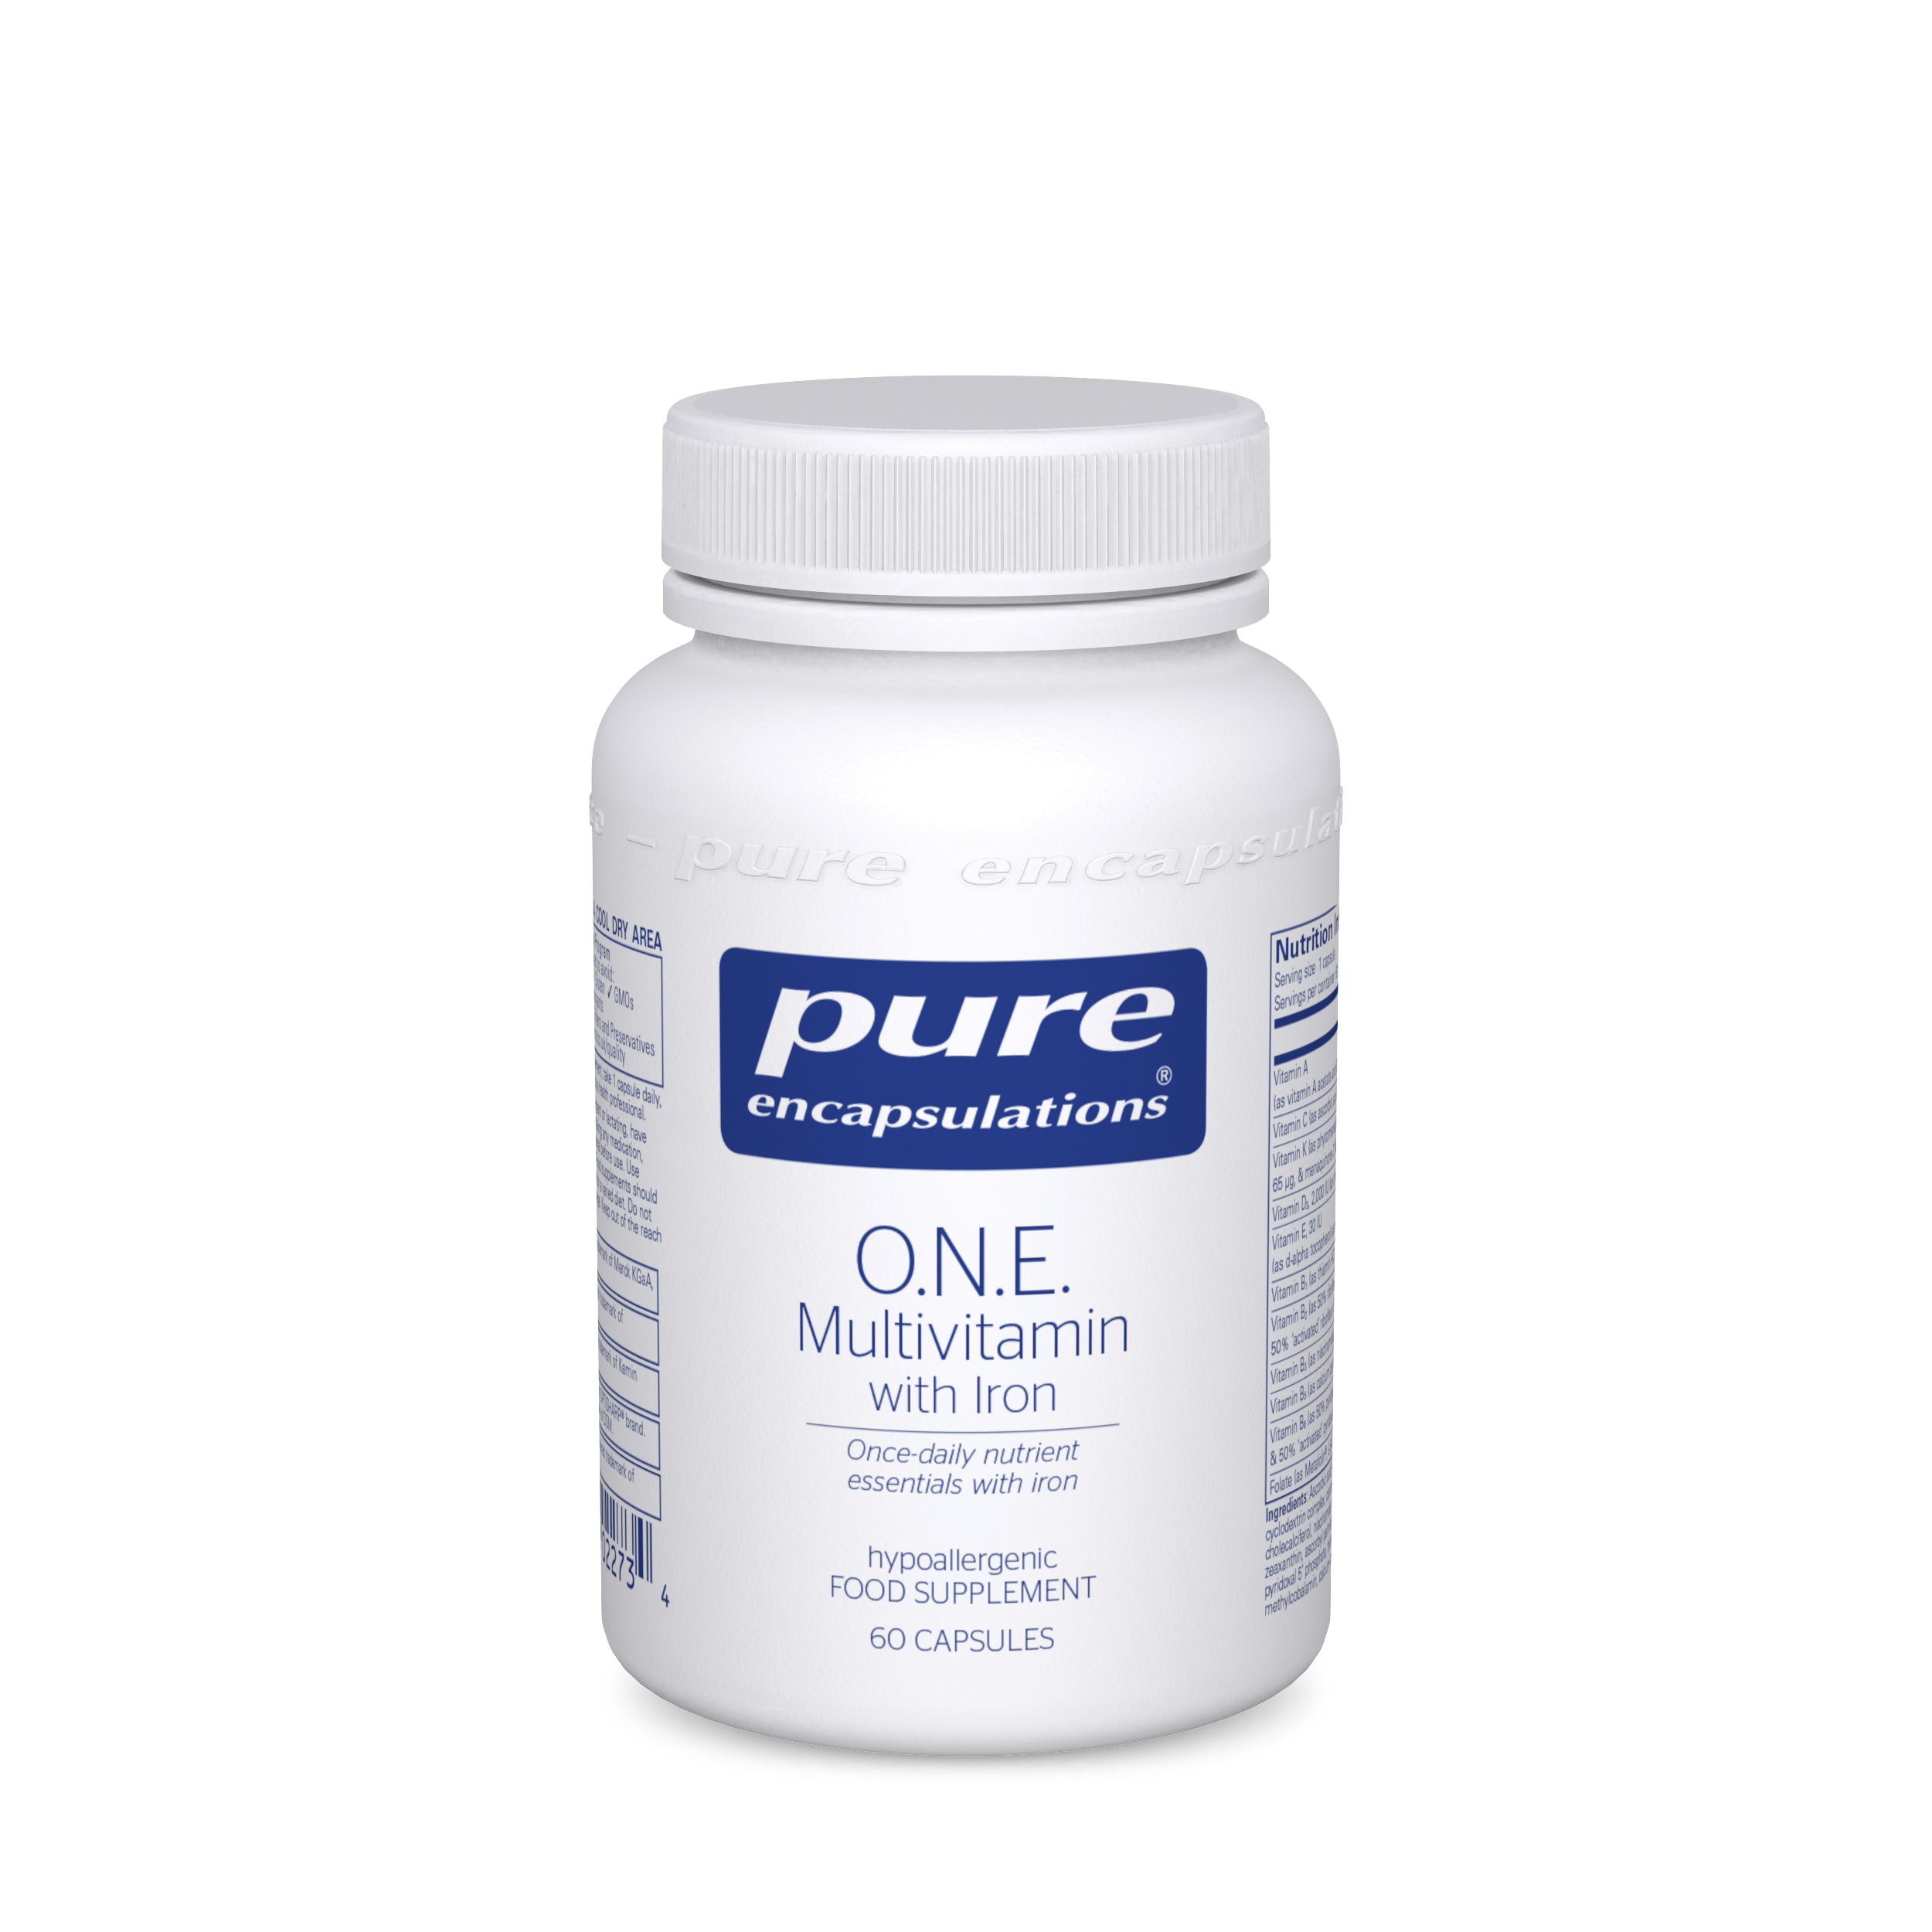 O.N.E Multivitamin with Iron 60's (Currently Unavailable)